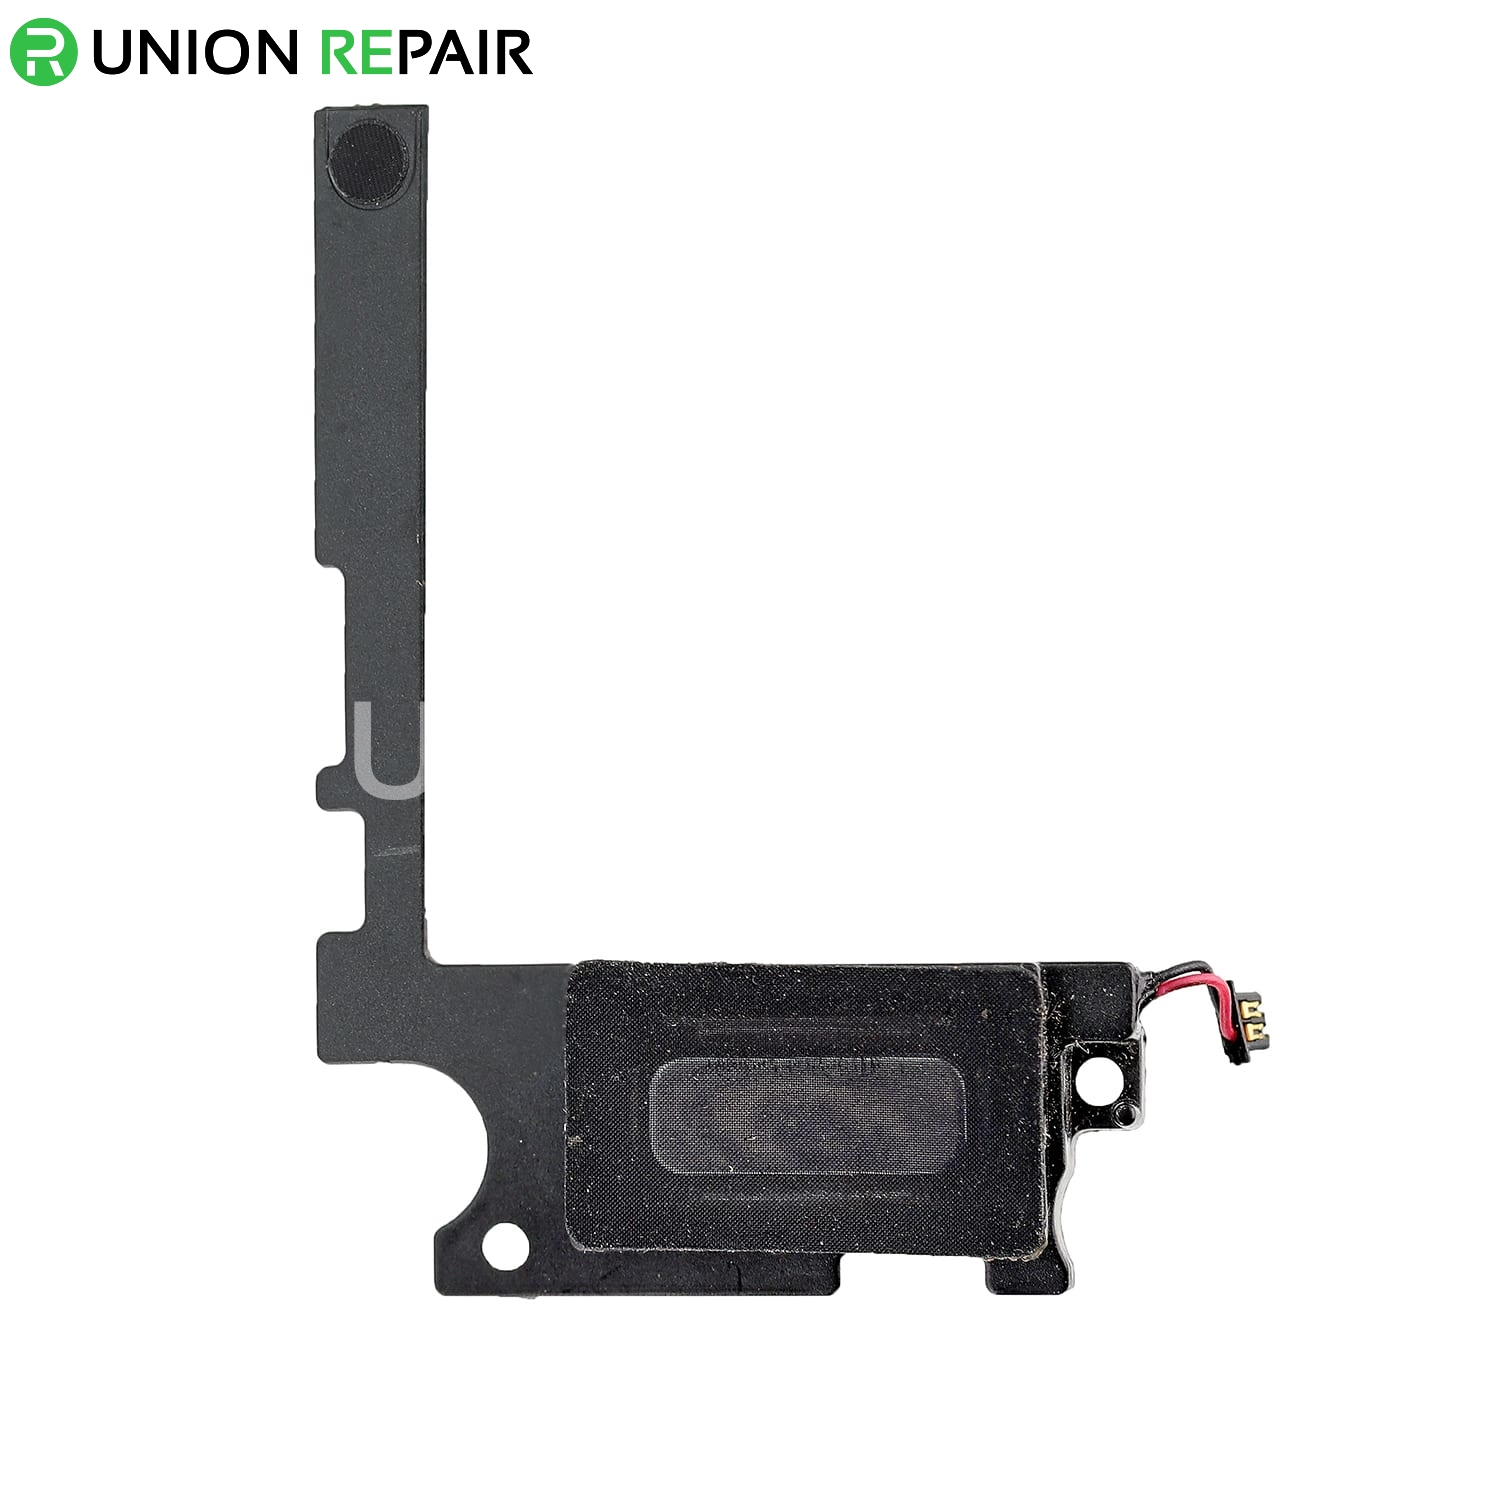 Replacement for Asus Zenfone 6 A600CG Loud Speaker Assembly